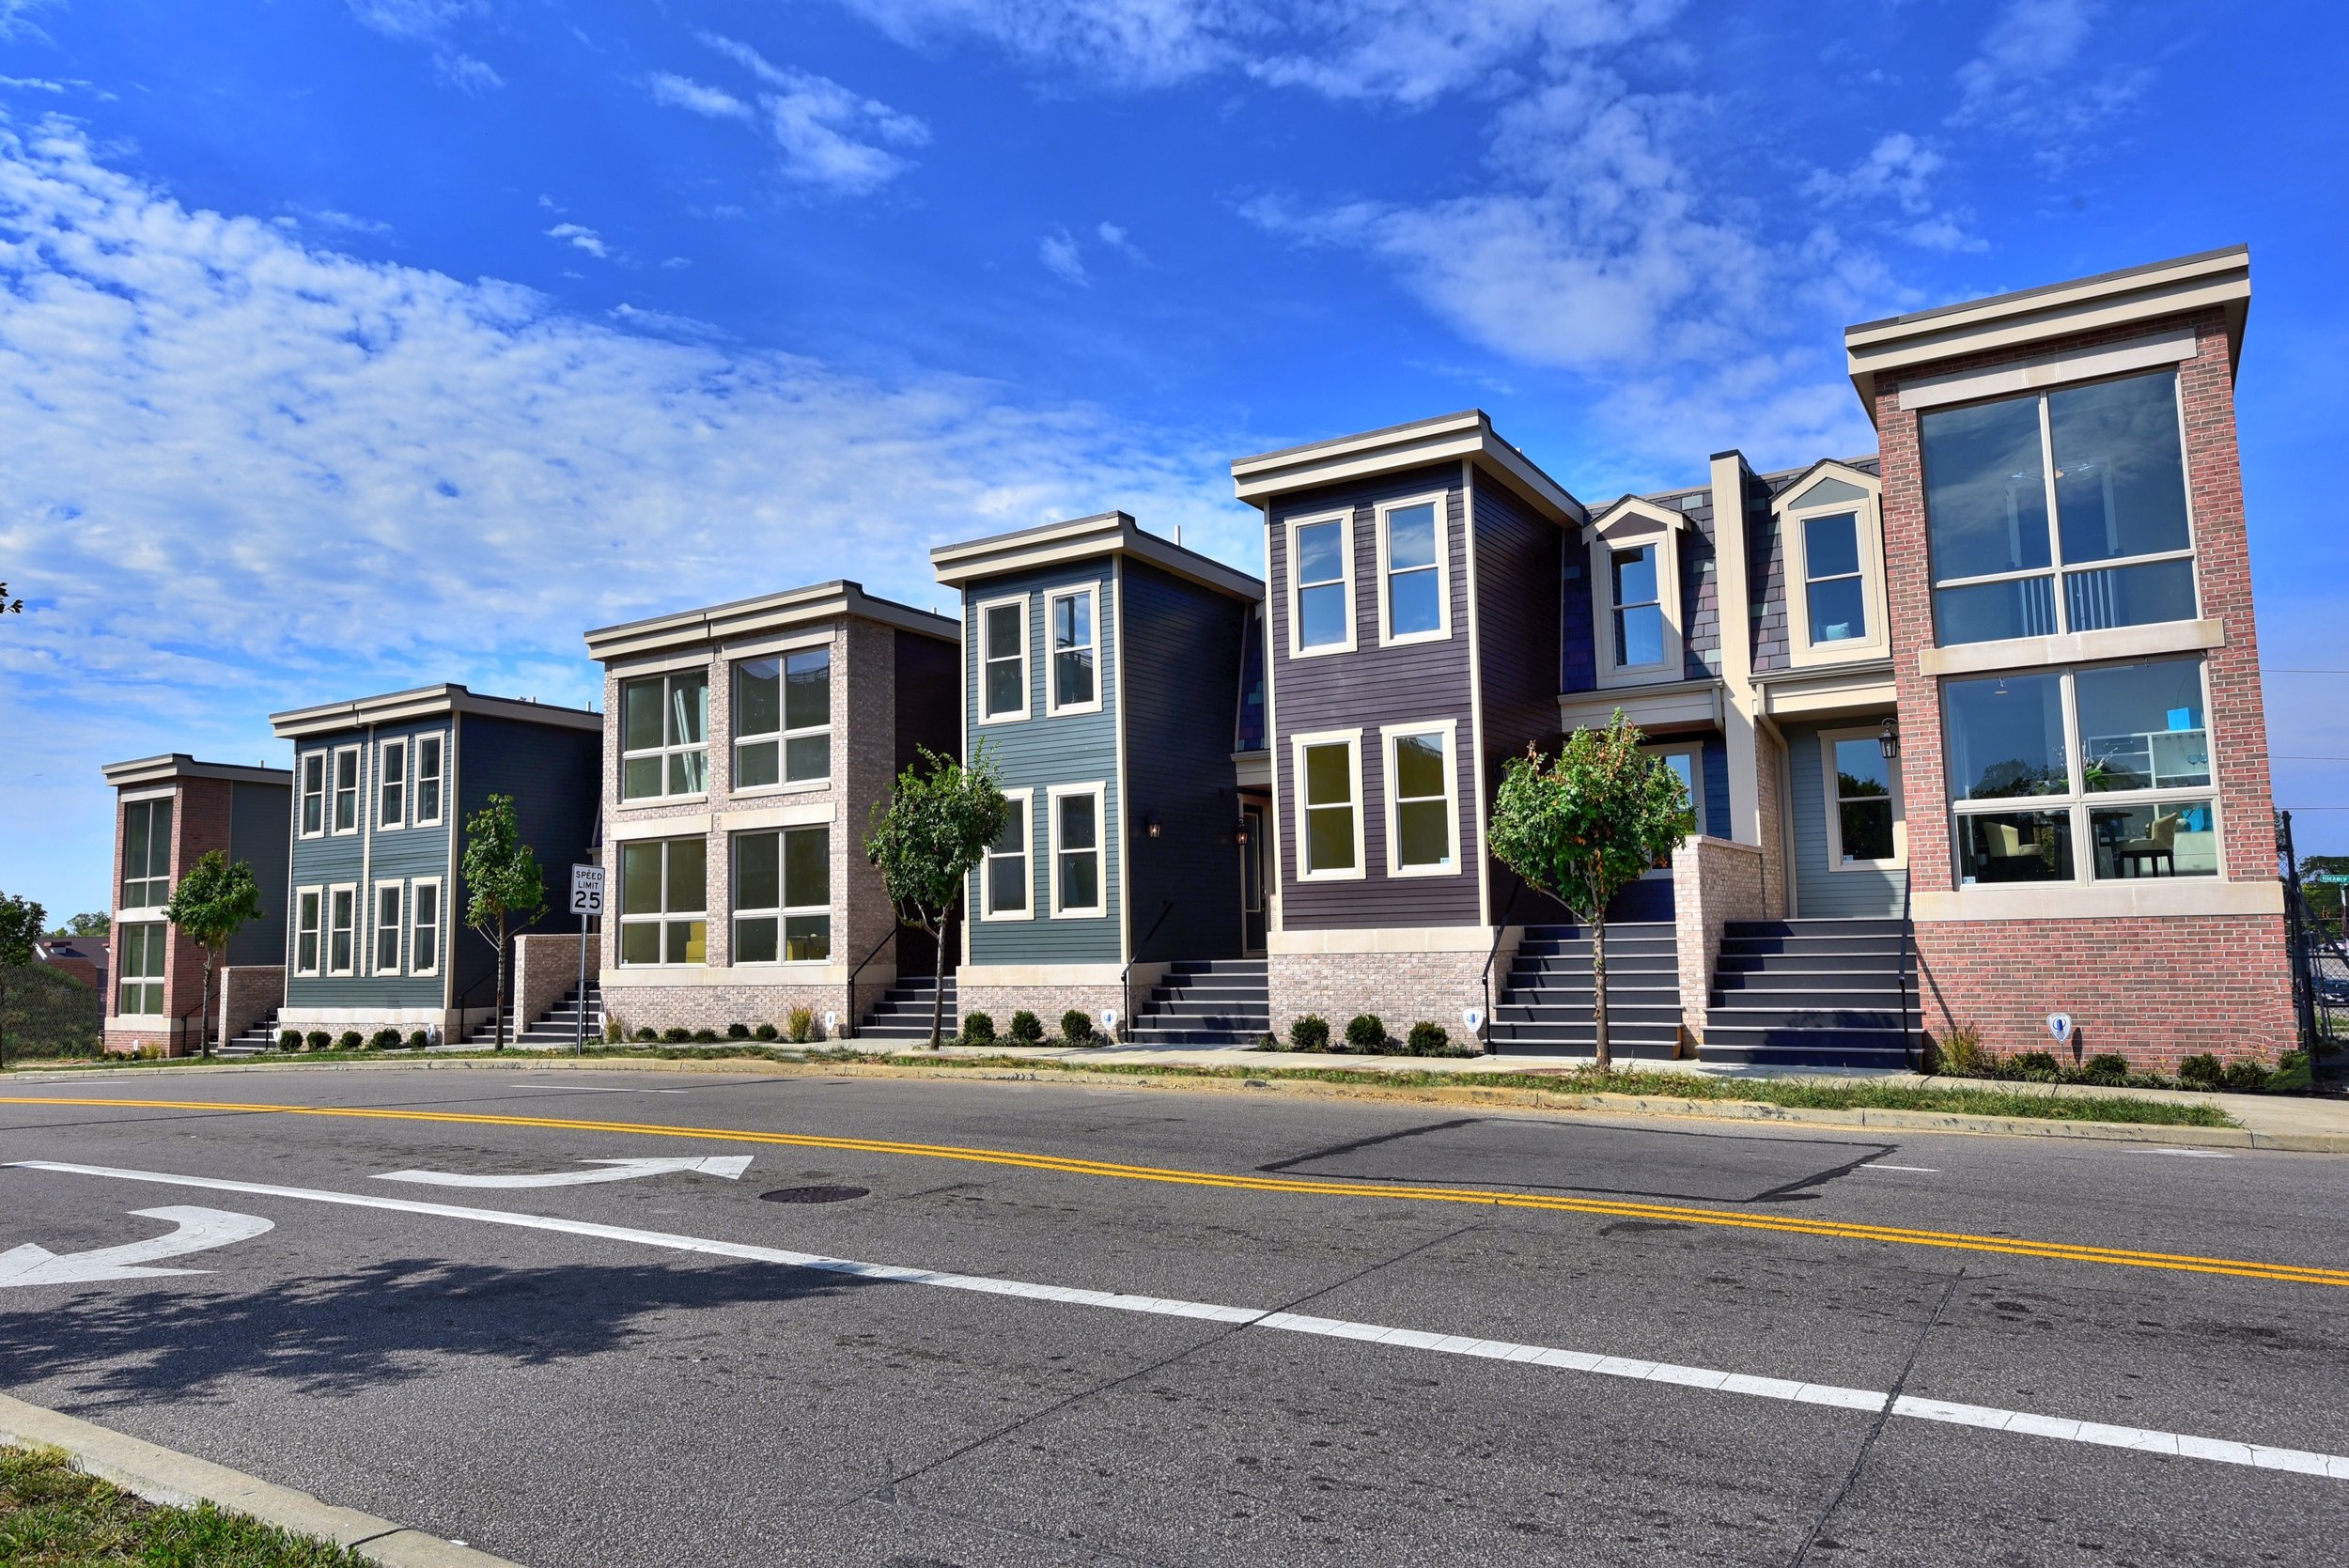 Hickory Townhomes is the first new, for-sale construction housing project in the neighborhood in over a decade.